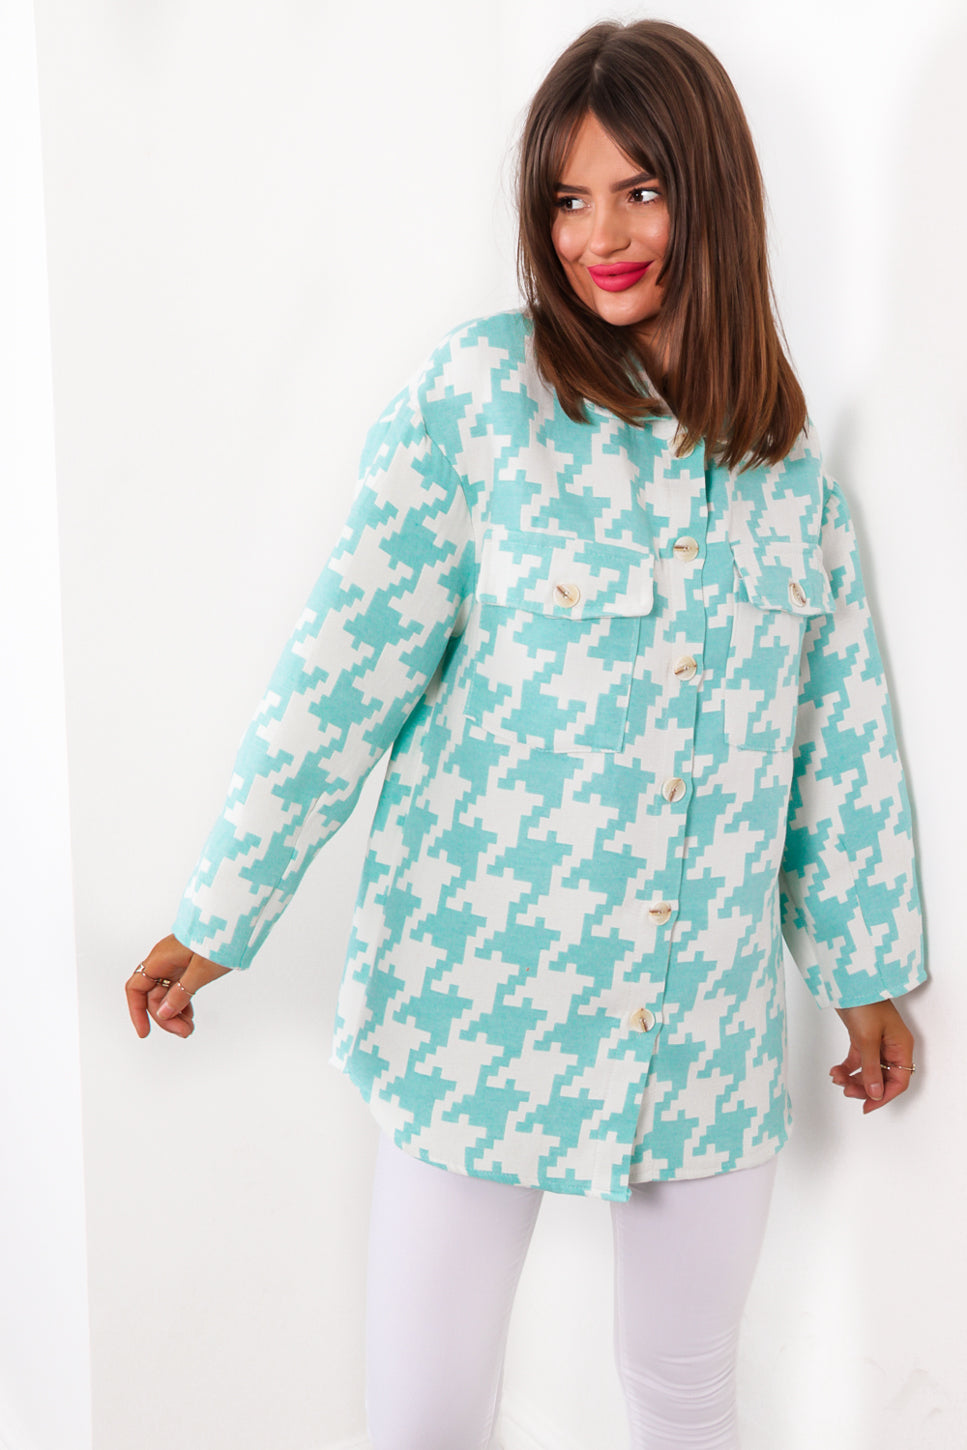 Hounds About Right - Mint Houndstooth Shacket